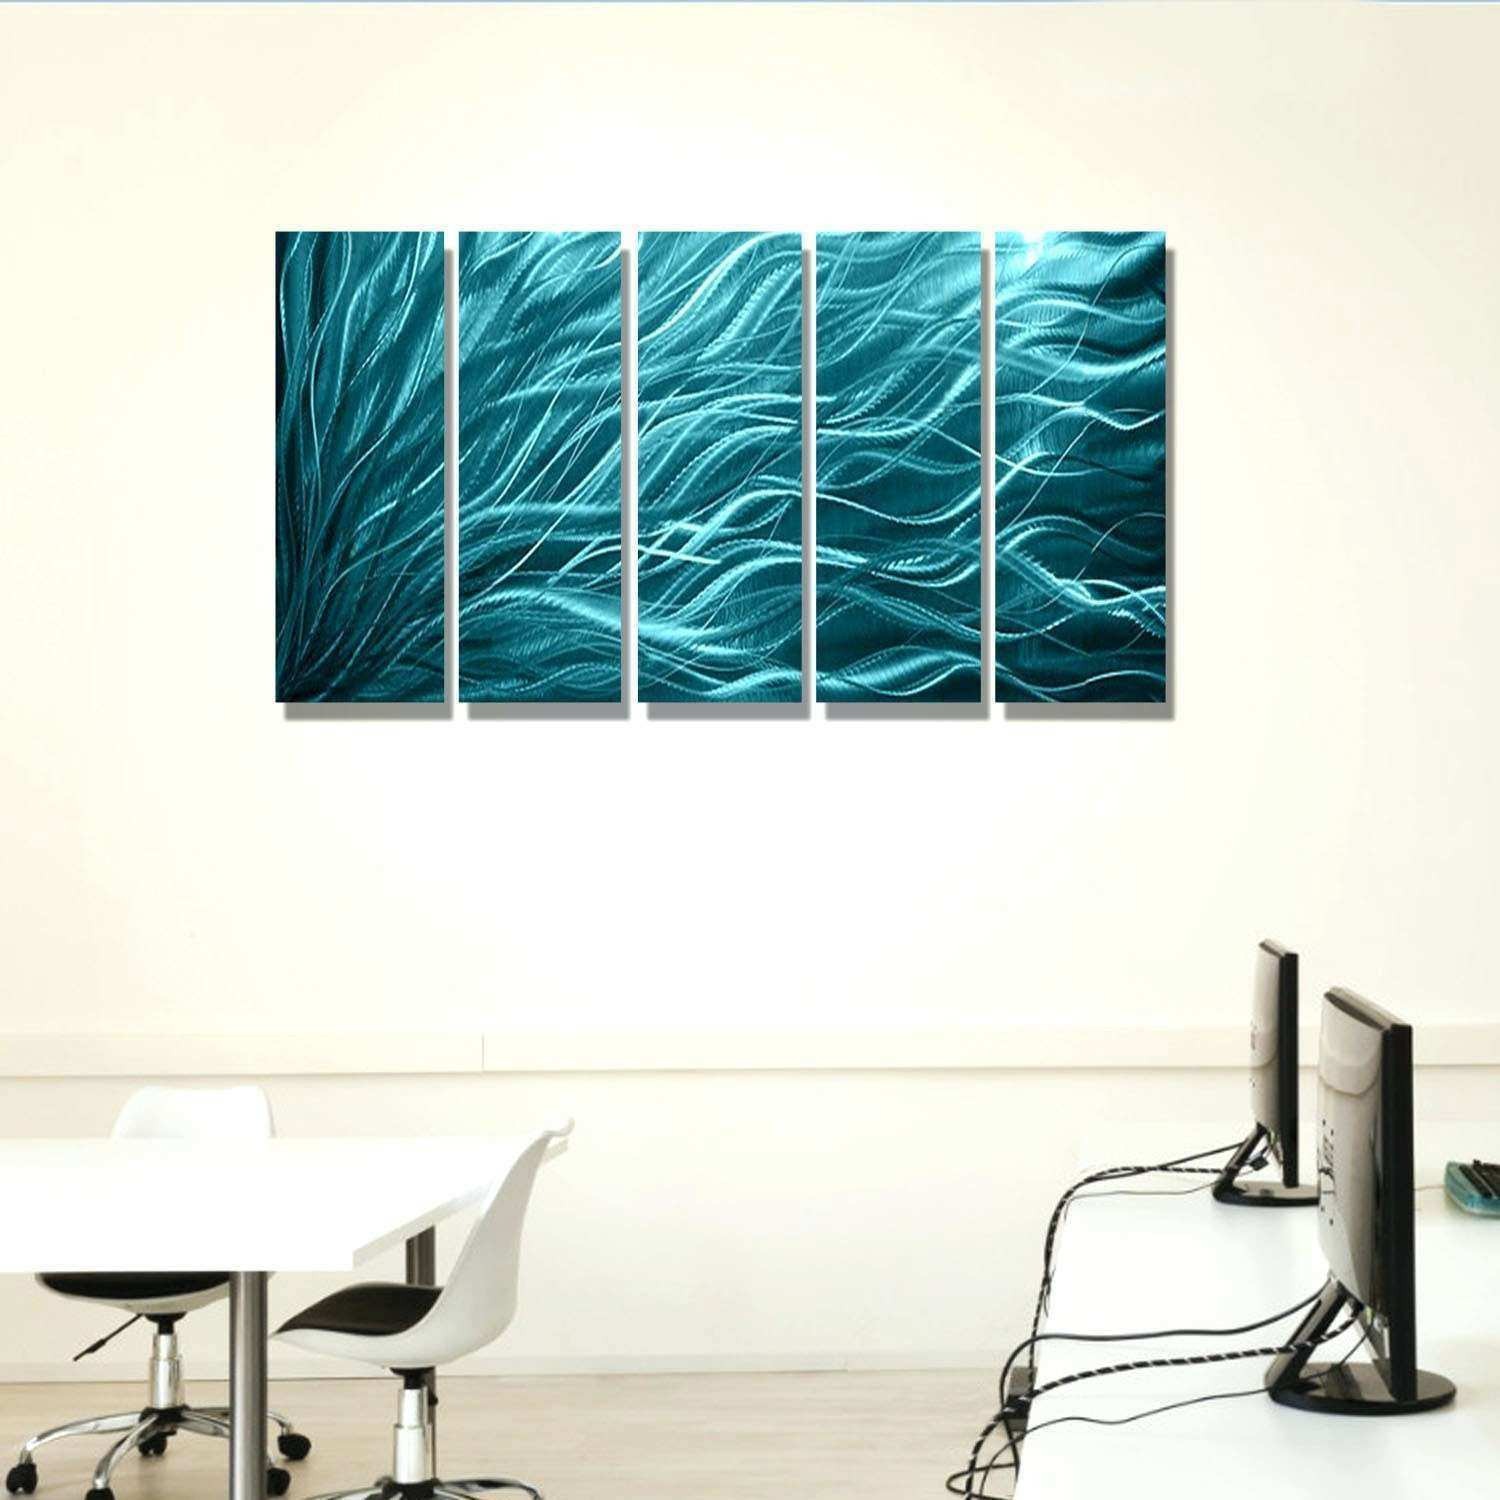 Wall Hanging Ideas for Bedrooms Lovely Metal Wall Art Panels Fresh 1